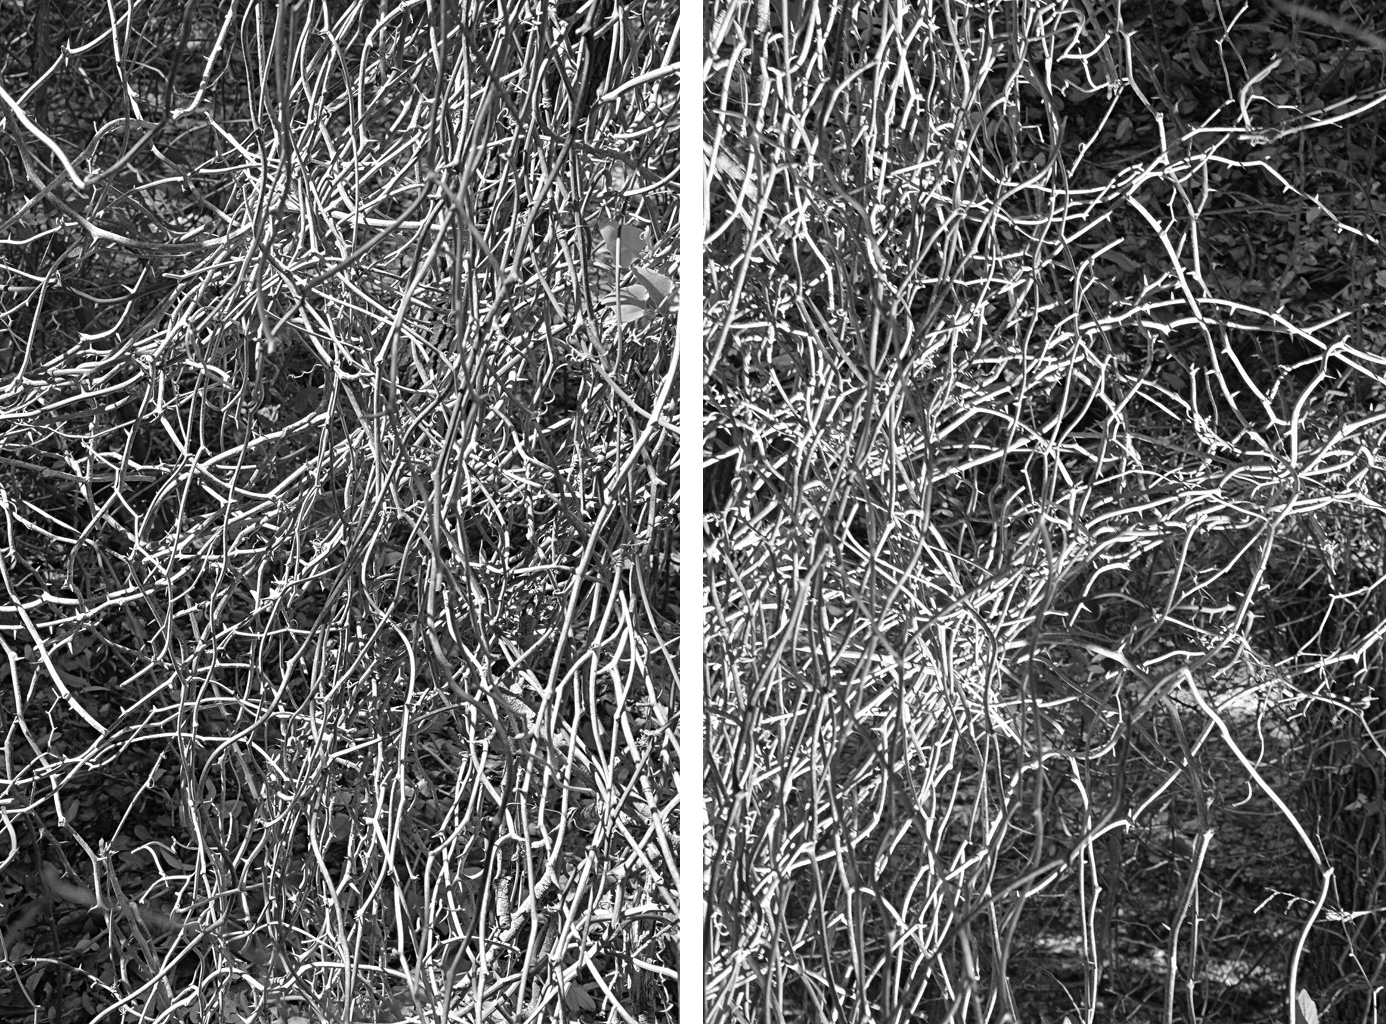 Where chaos becomes order (Diptych)